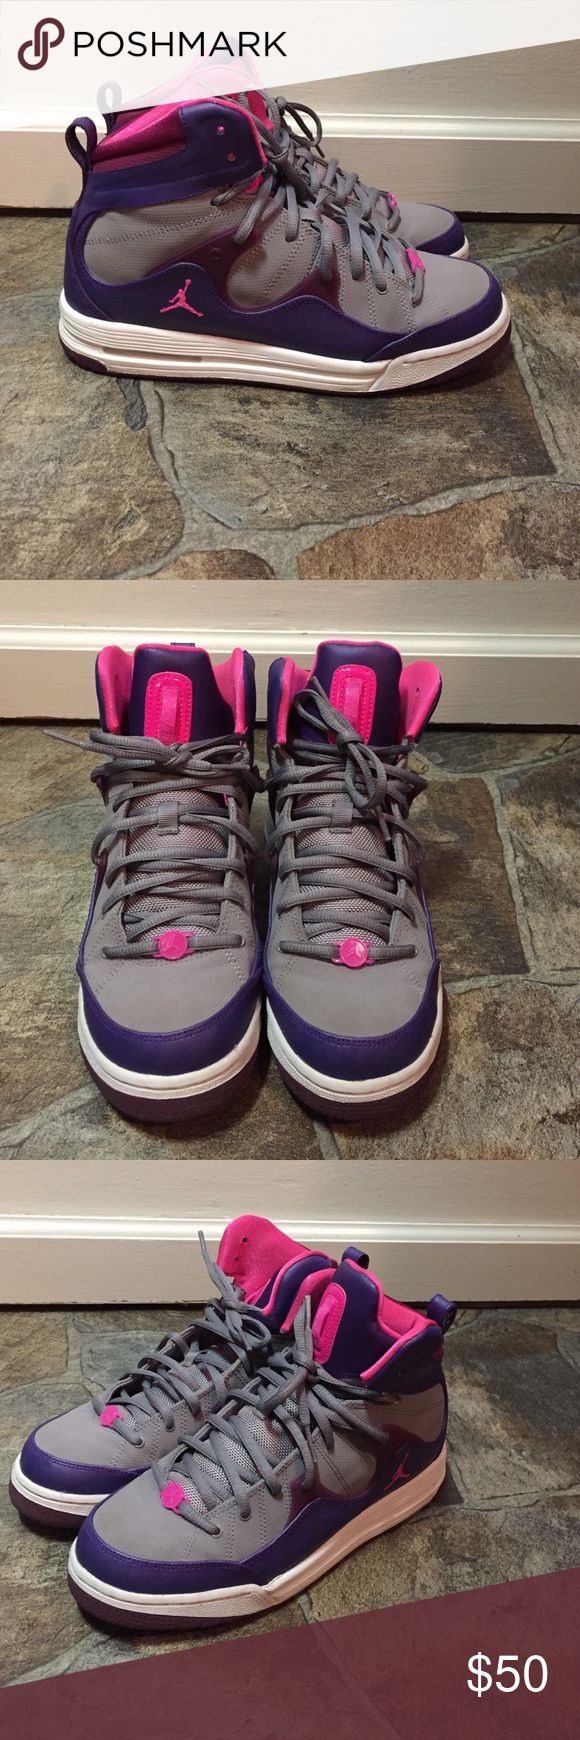 Air Jordan tennis shoes In perfect condition. Nothing wrong with them. Only worn maybe twice. Girls size 7. Jordan Shoes Sneakers